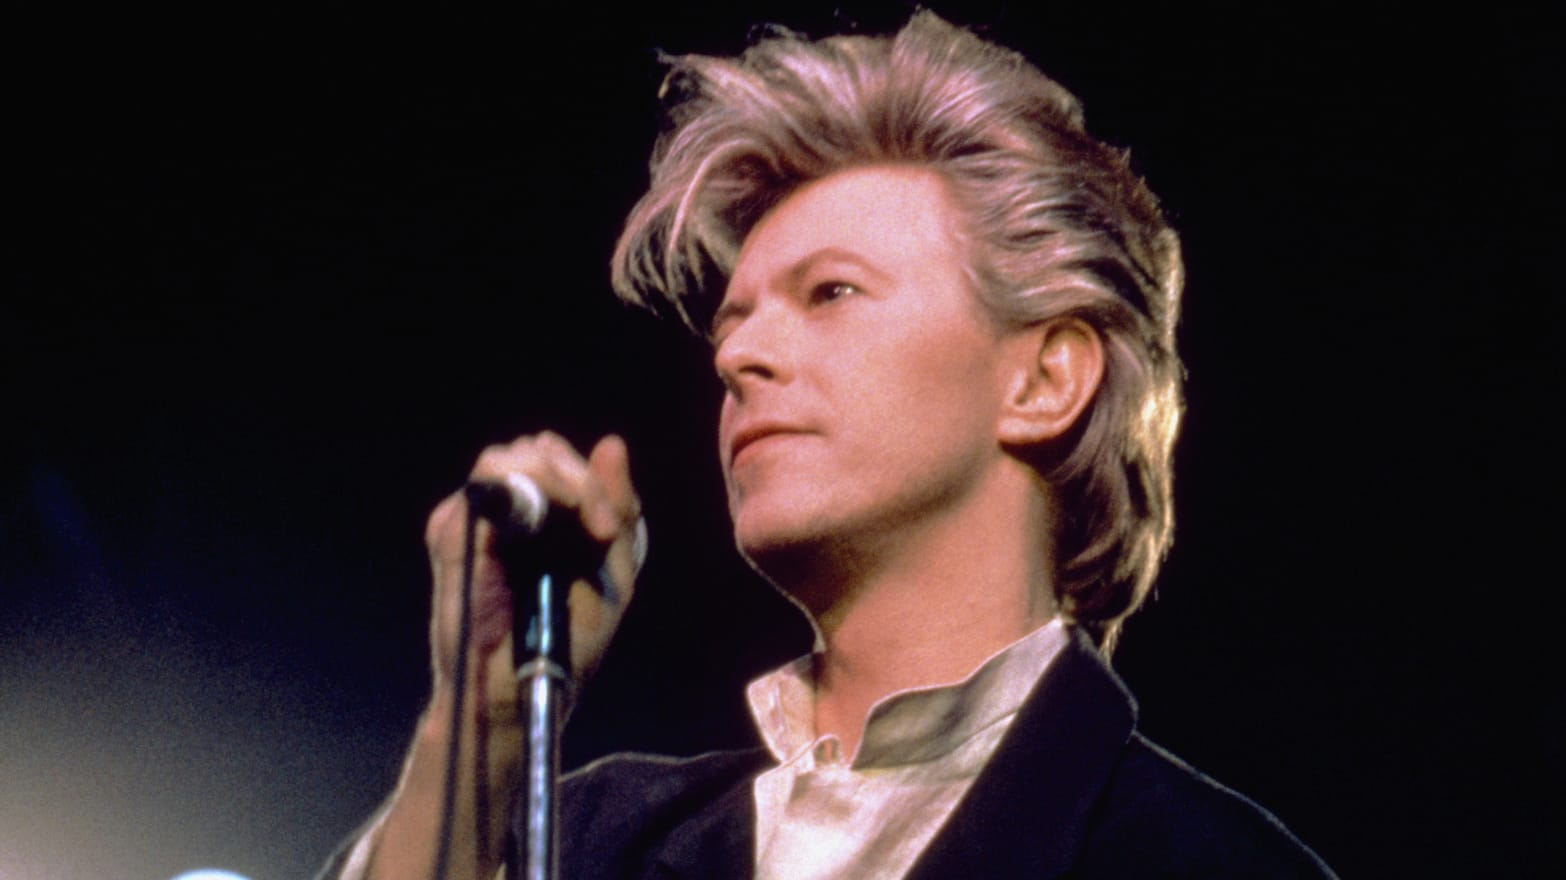 Why David Bowie's Top 100 Books List Had Only 75 Books